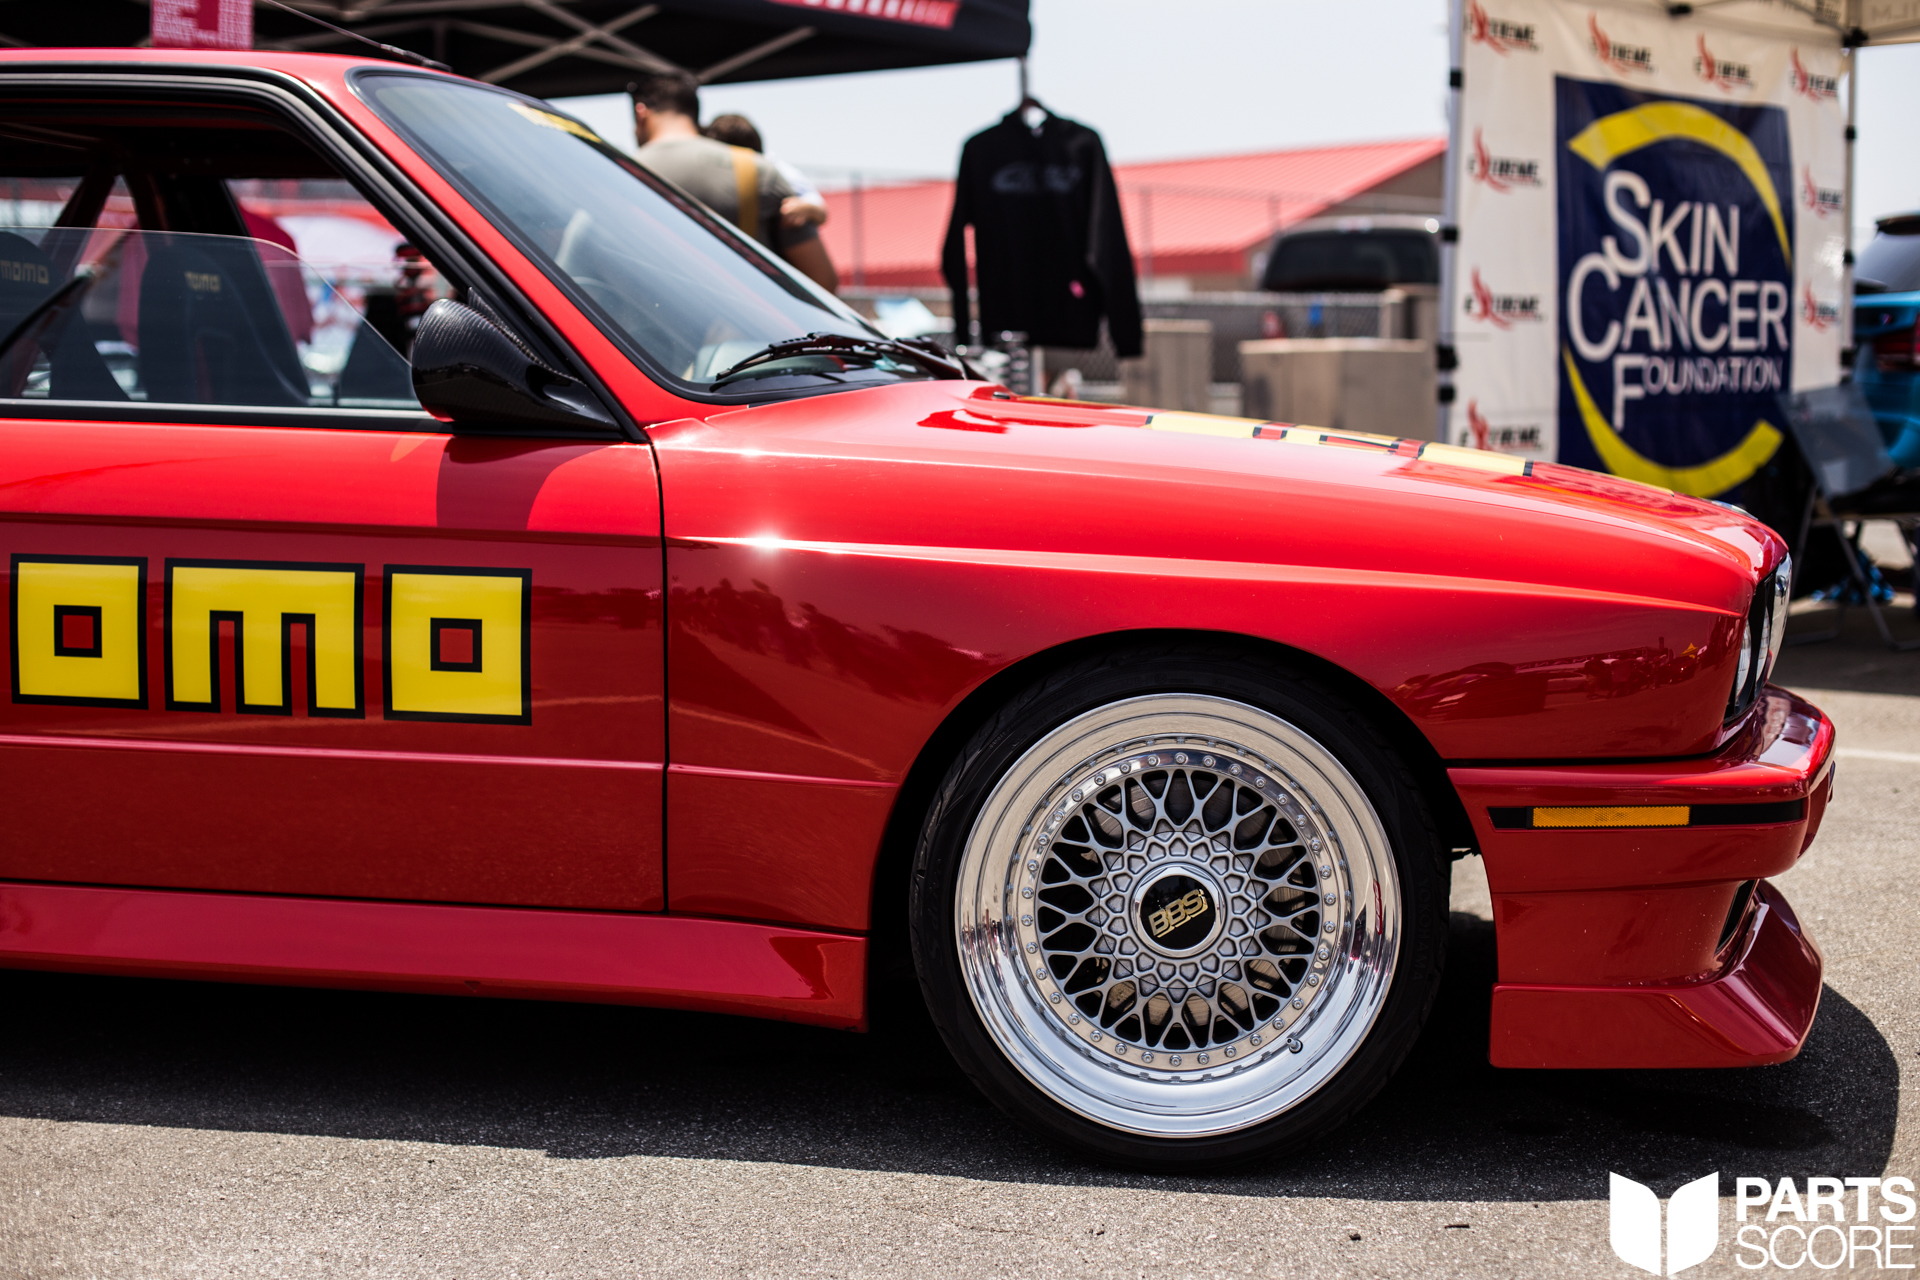 bmwracing, Bimmerfest, supercharged, bagged, slammed, stance, bmwstance, , Bimmerfest2016, BMW, BMWNA, Next100, BMWNorthAmerica, Bmwgram, Esstuning, ess, california, bmwm, bmwm3, bmwm4, bmwm5, bmwmotorsport, bmwmpower, mpower, partsscore, toyotires, toyo,